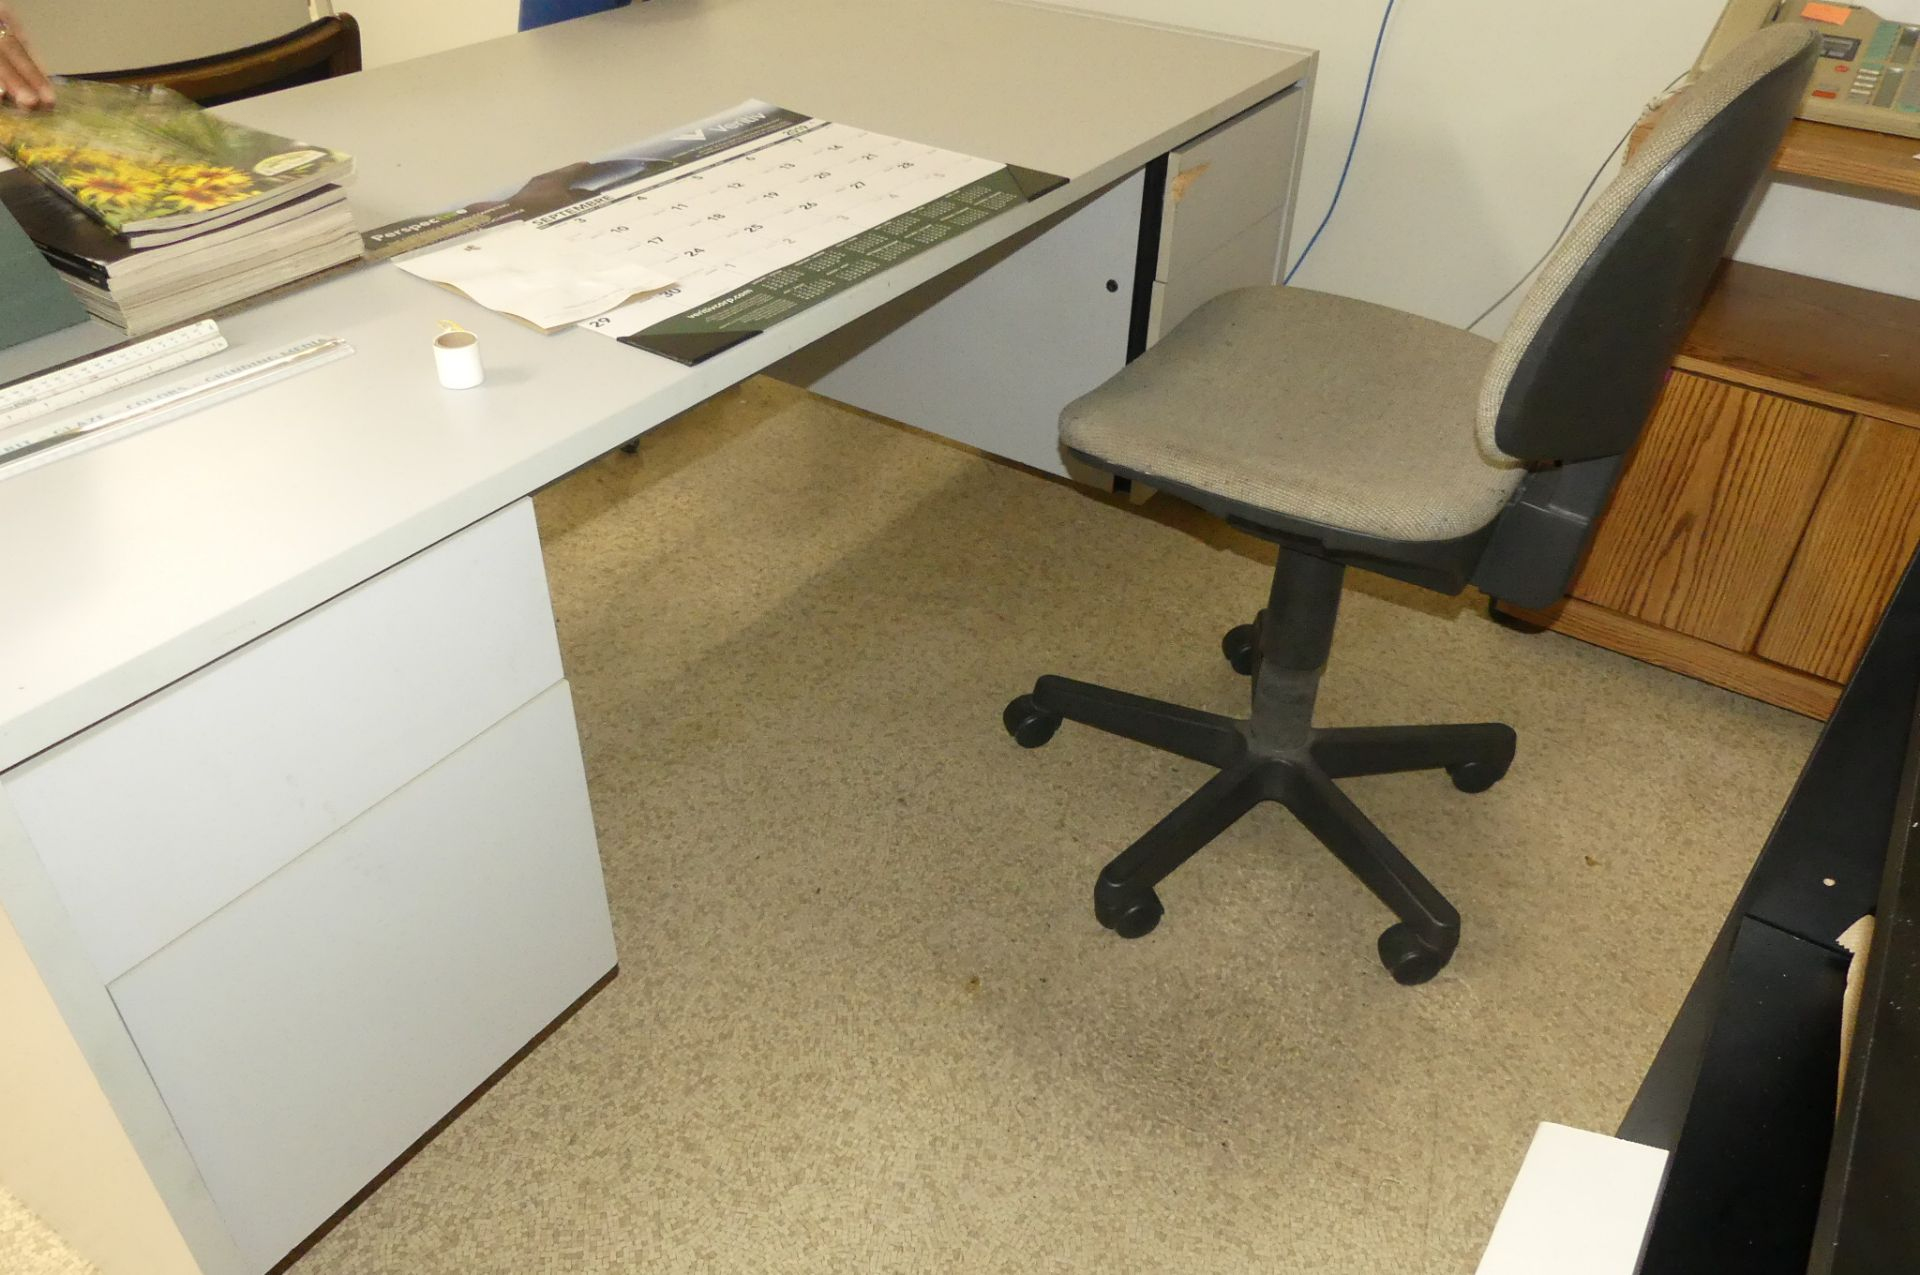 4-CHAIRS, TABLE, DESK, SHELVING UNIT - Image 2 of 2